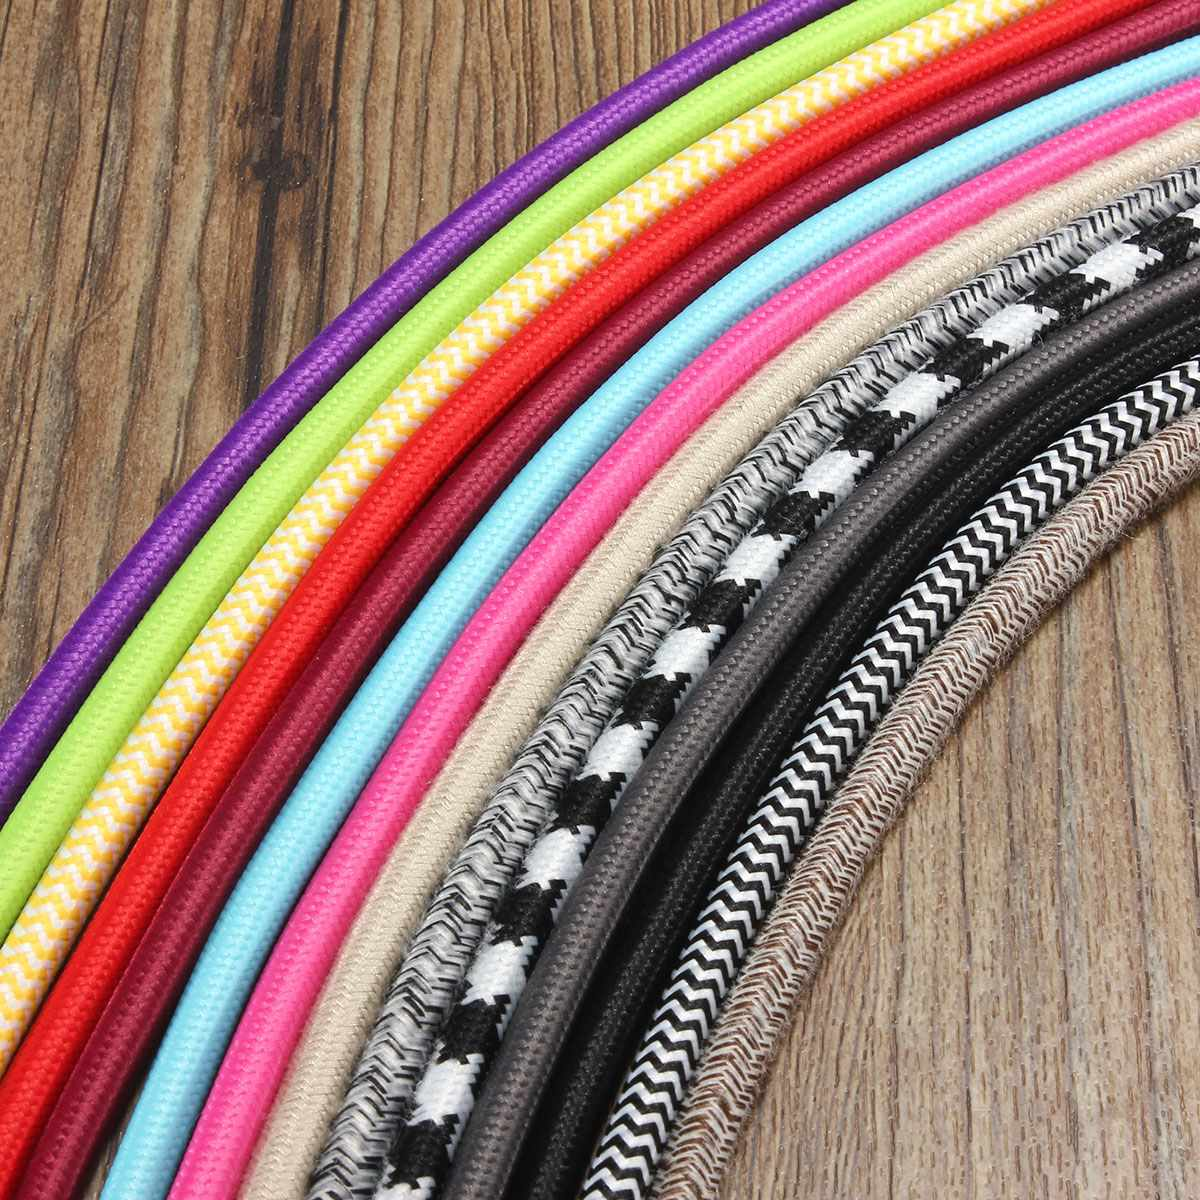 3 Meter 2 Cord 075cm Multicolor Retro Vintage Twist Braided Fabric Wiring A Chandelier Light Cloth Cable Electric Wire Pendant Lamp In Wires Cables From